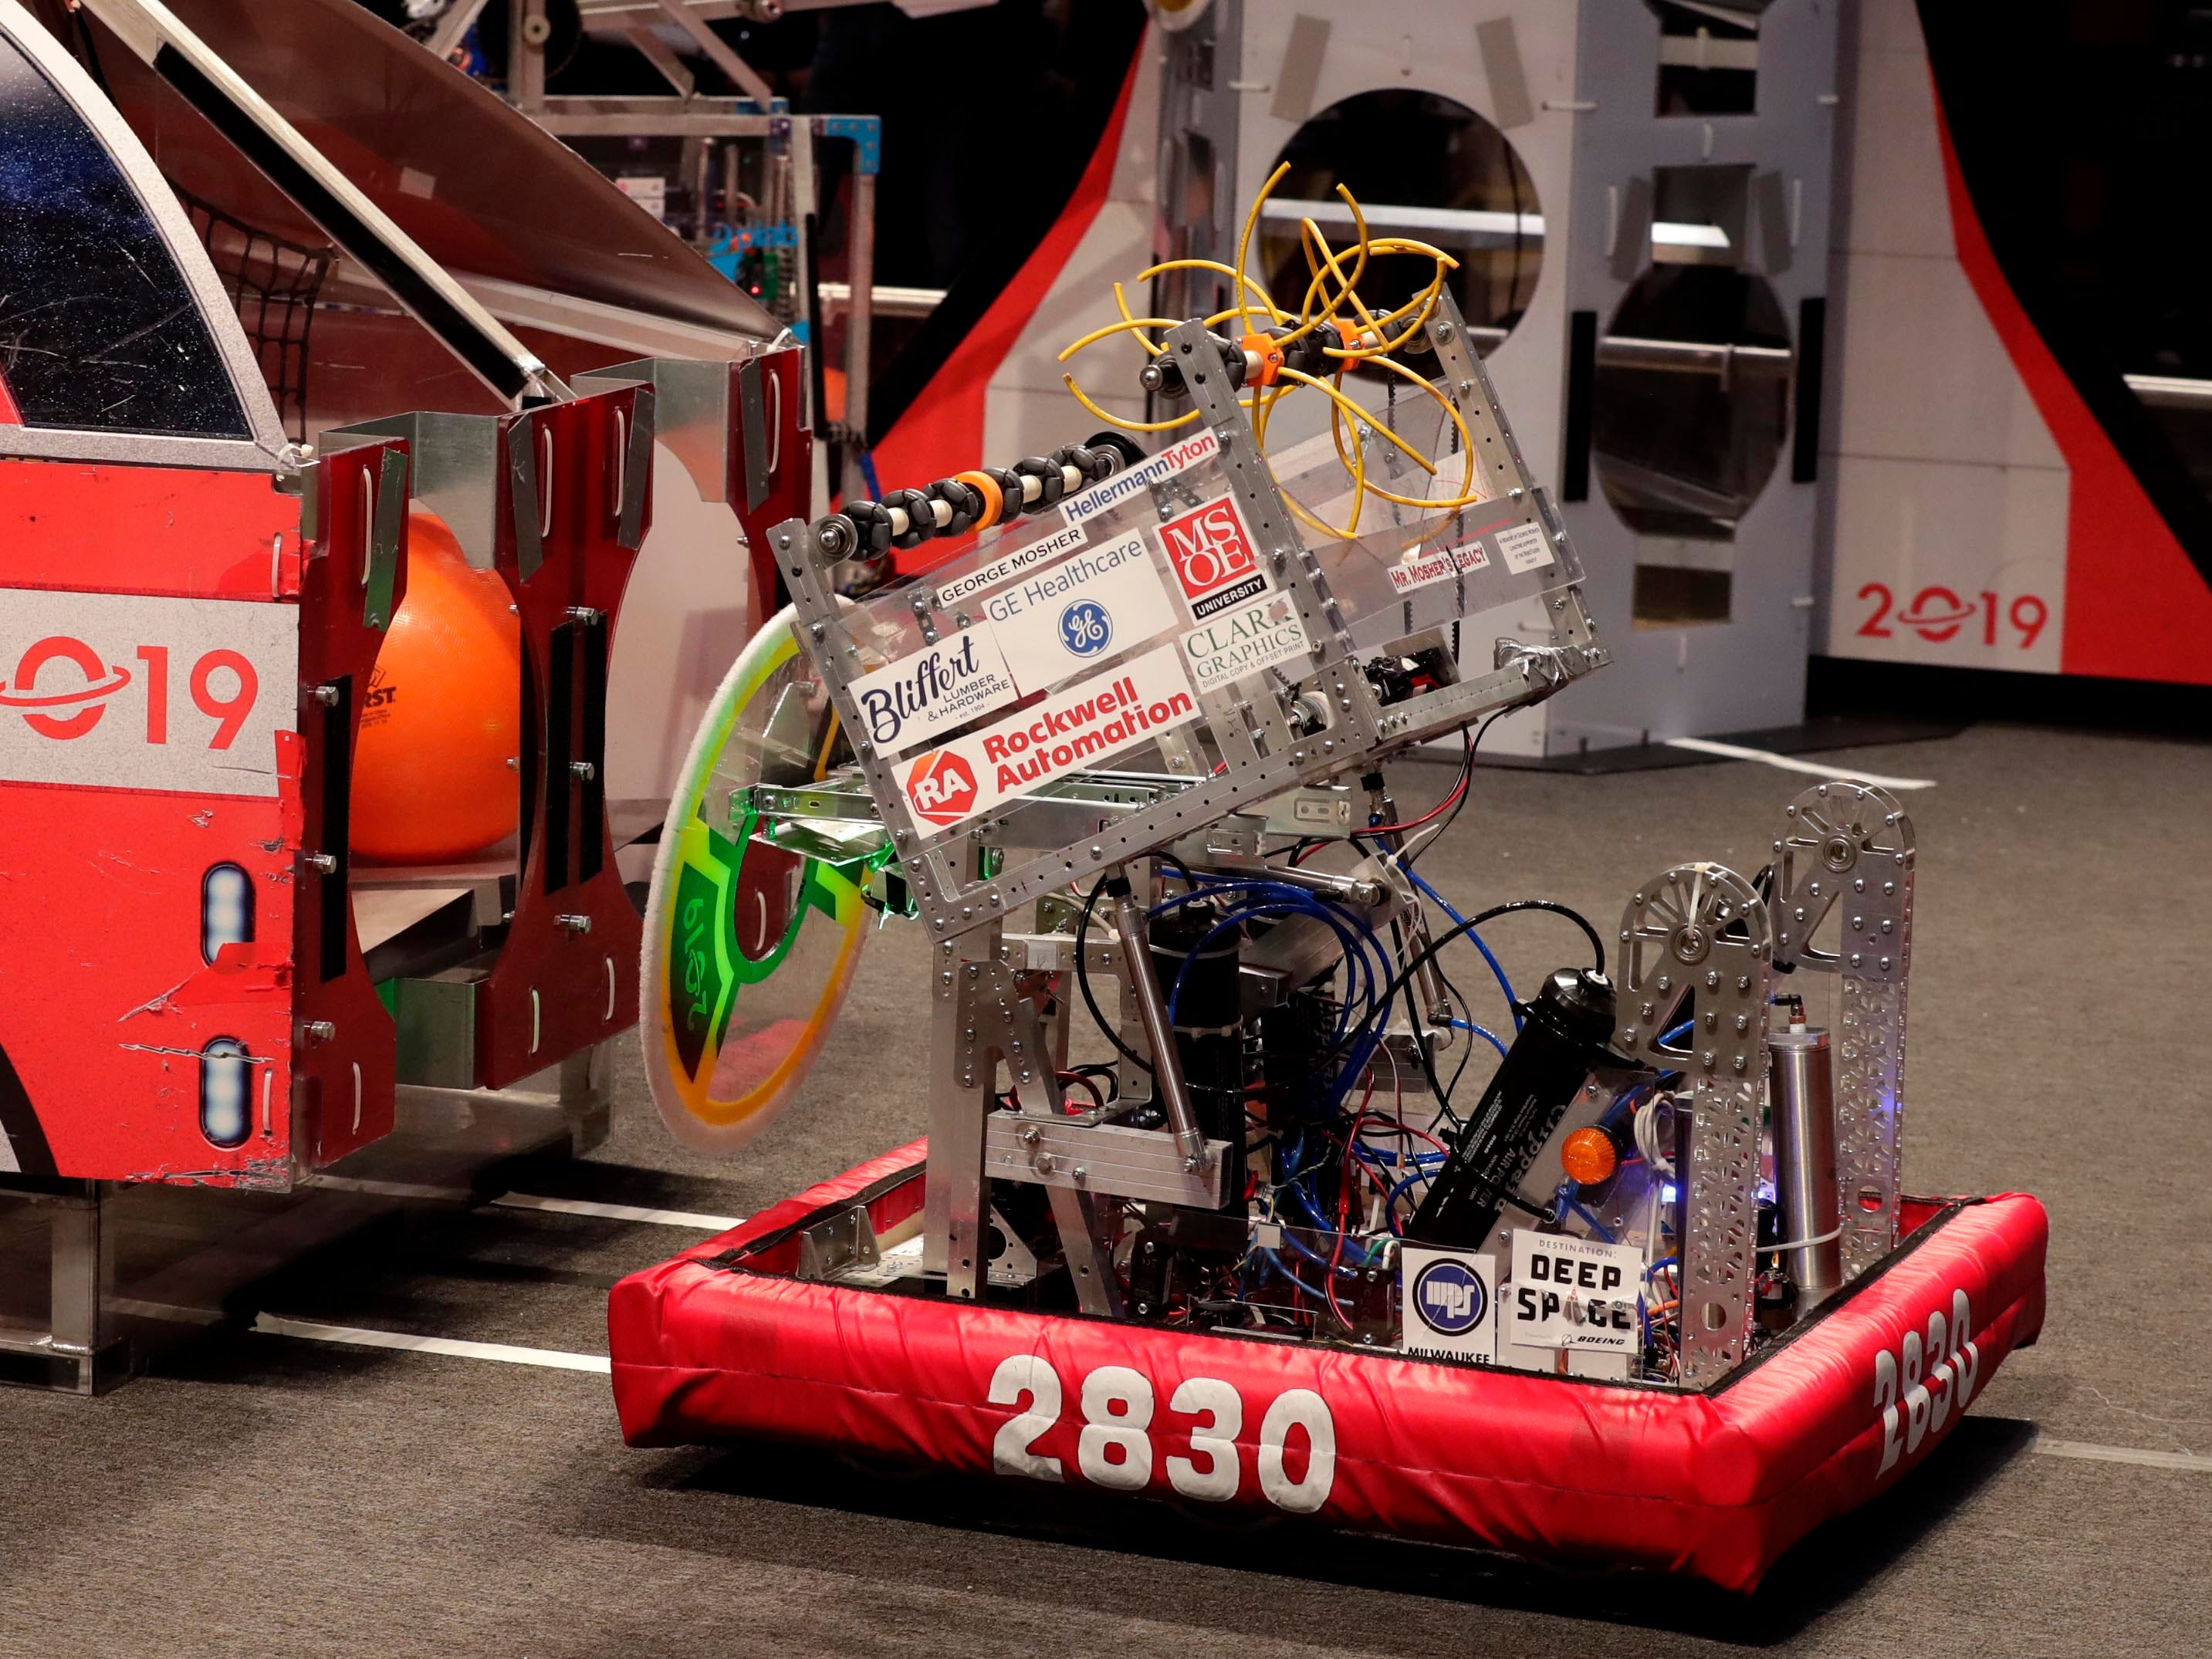 Team members  maneuver their robot to attach a circular disk to a magnet to score points during competition.